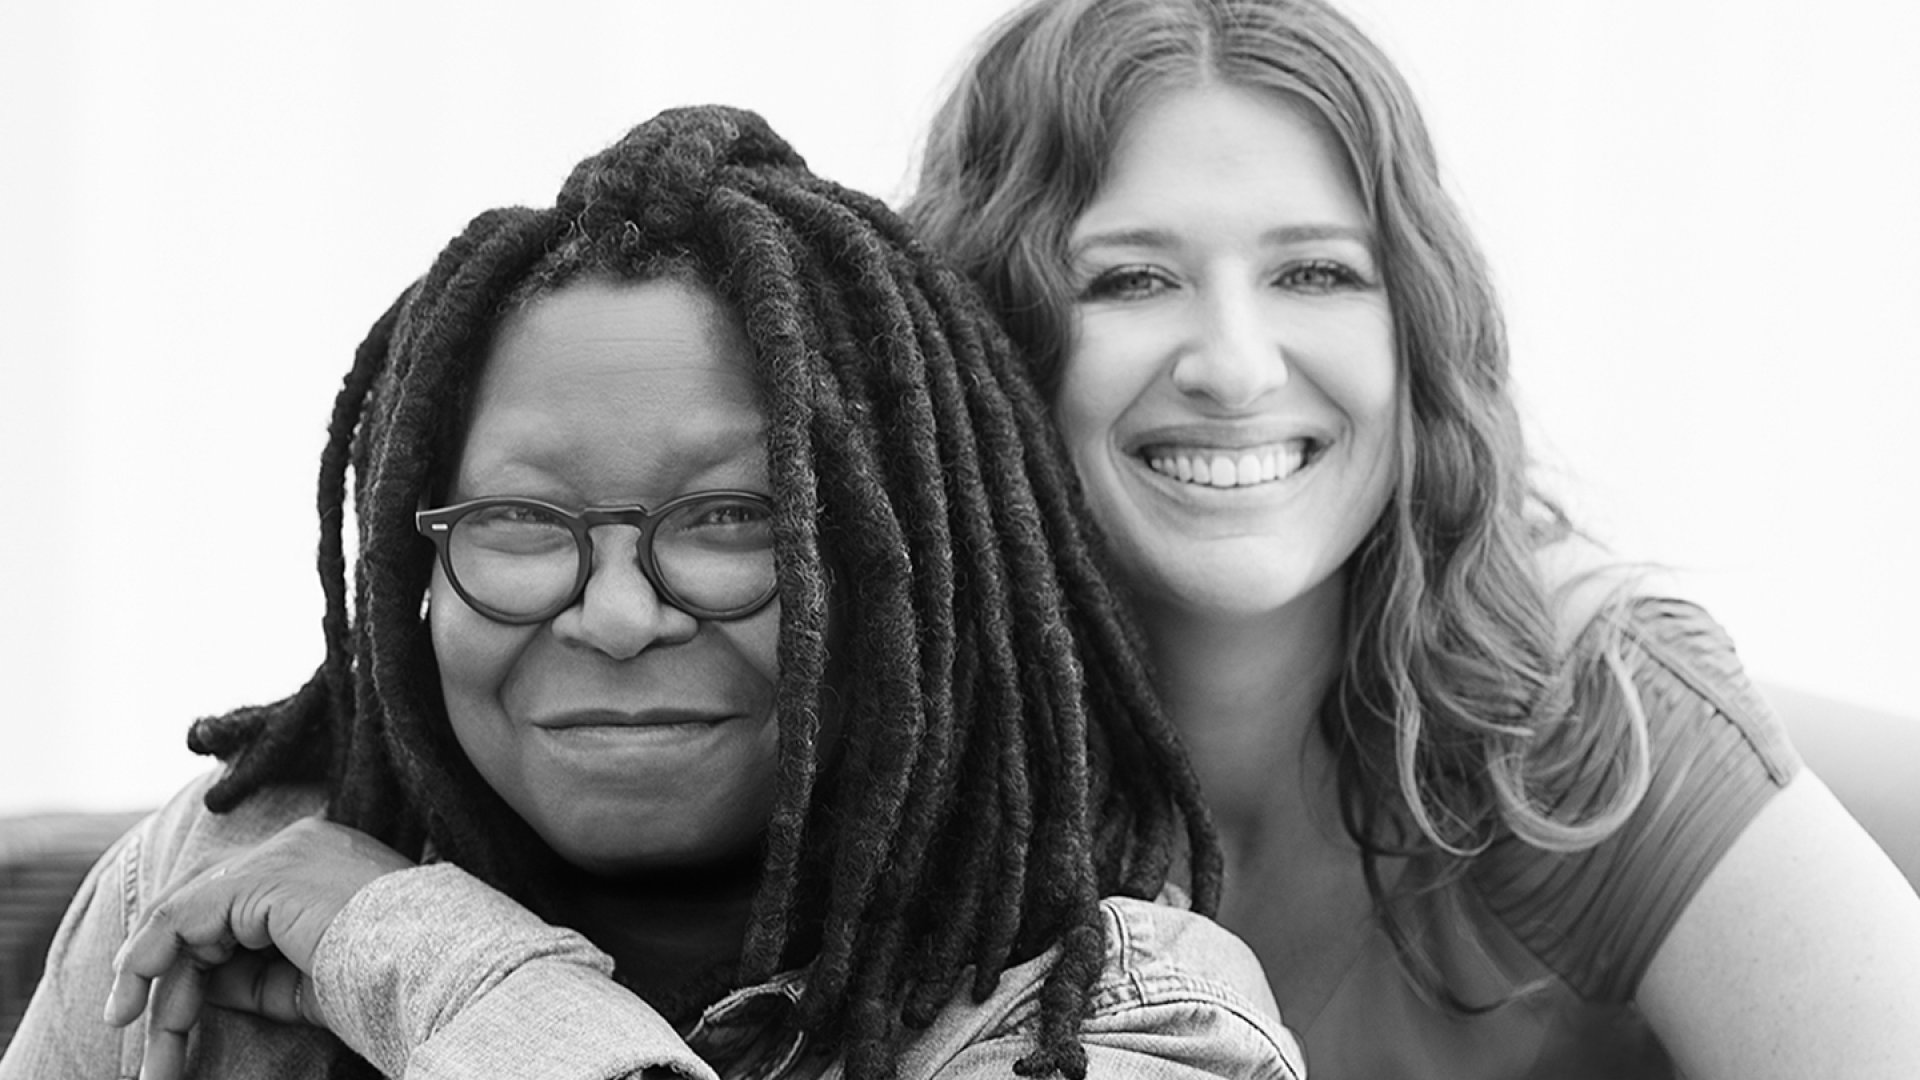 Actress Whoopi Goldberg and medical marijuana edibles maker Maya Elisabeth have teamed up to sell THC edibles geared towards women.